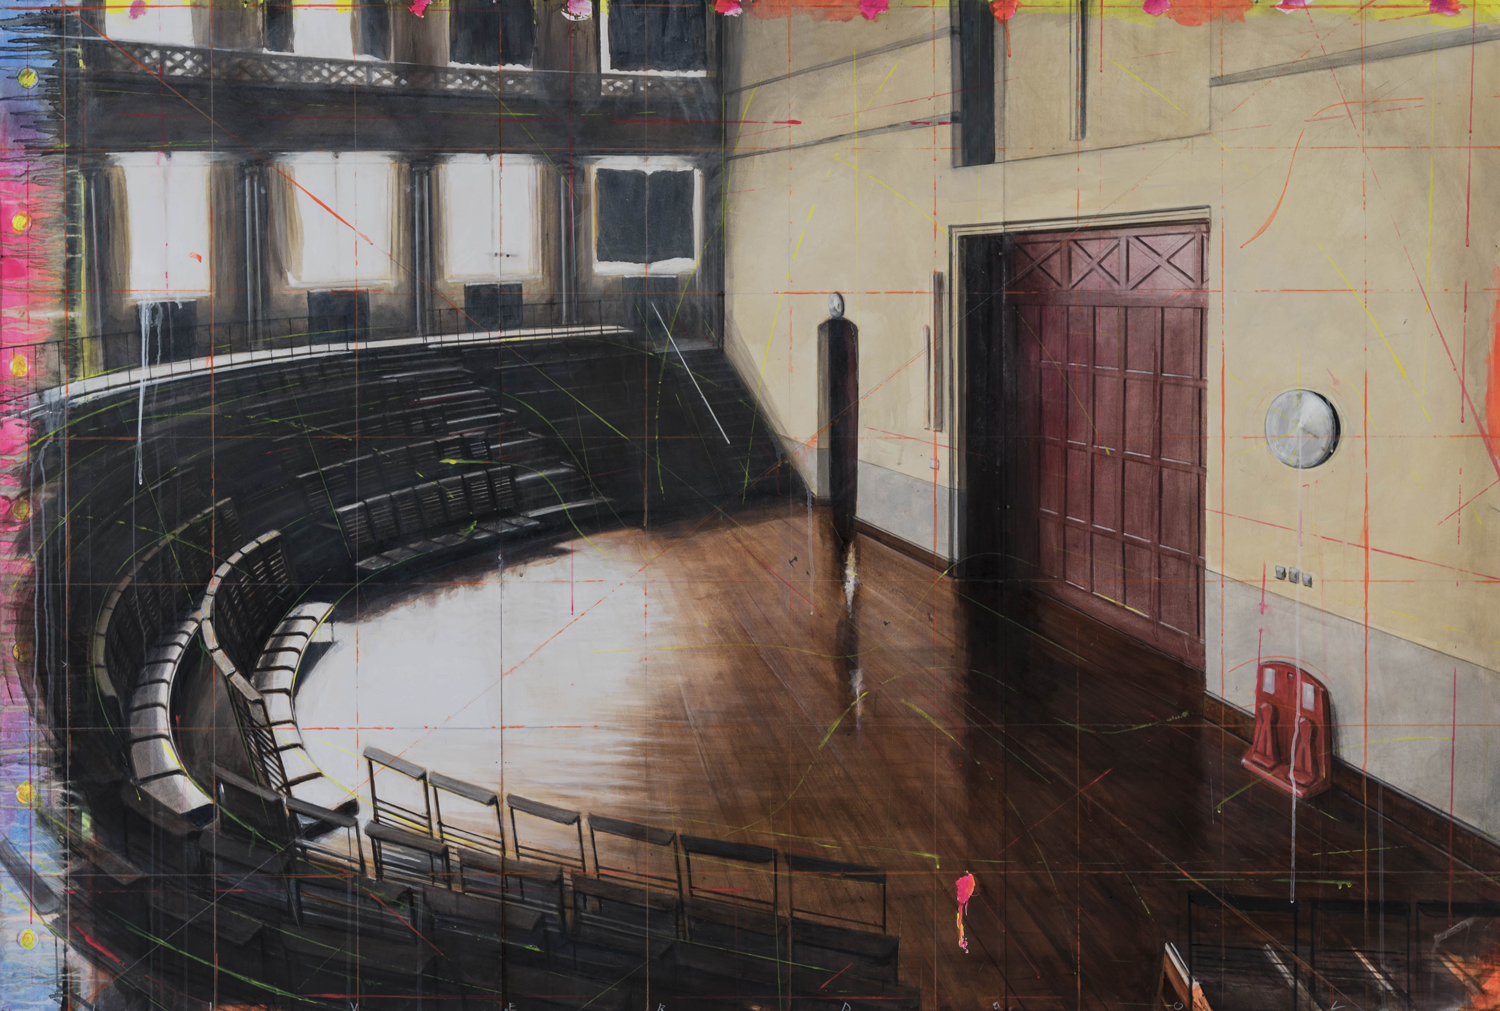 Lecture Theater/Liverpool, 2015, 4 x 6 feet, acrylic on panels